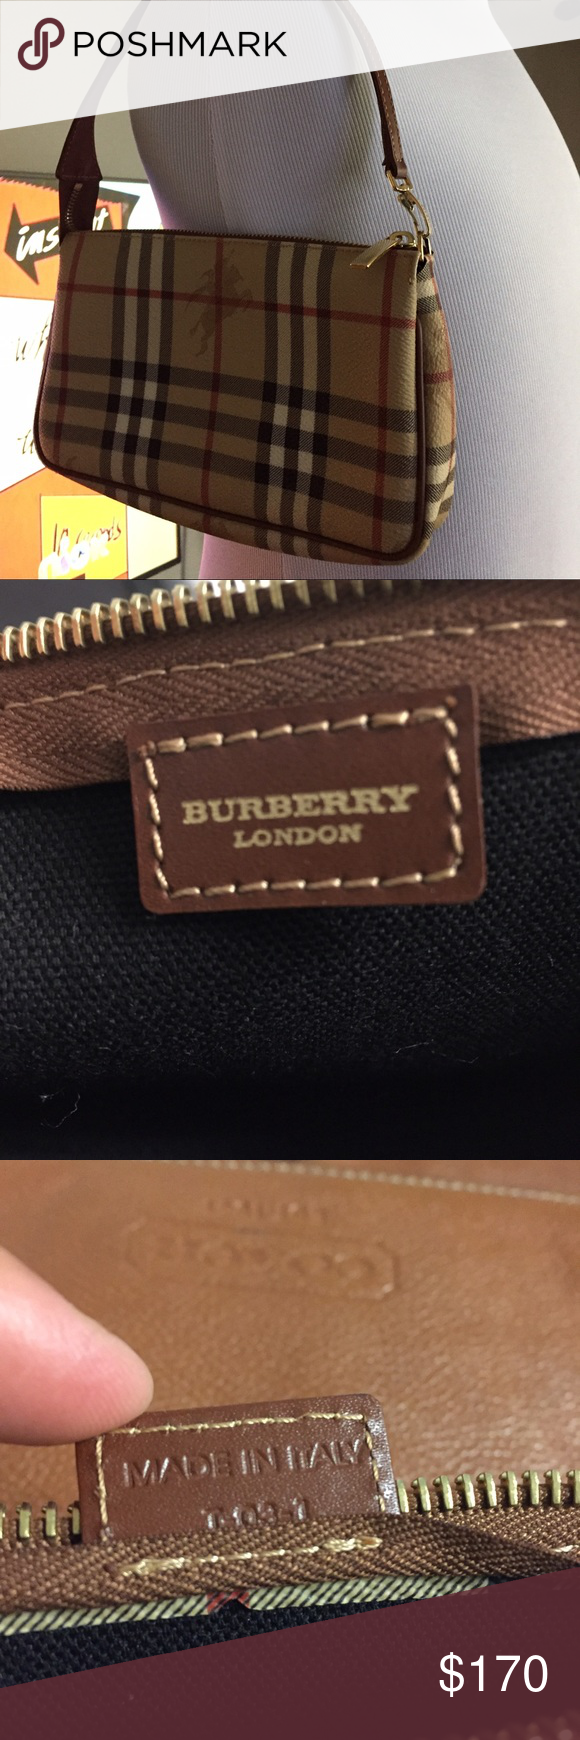 "Auth Burberry Hay Market Check Leather bag Italy Pre loved. Authentic Burberry Made in Italy. Measurement Bag depth 1.5"" Bag Length 8.2"" Strap Drop 5.5"" Bag Height 5.1"" All offers accepted for my listing. Please share. Thank you. Burberry Bags Mini Bags"